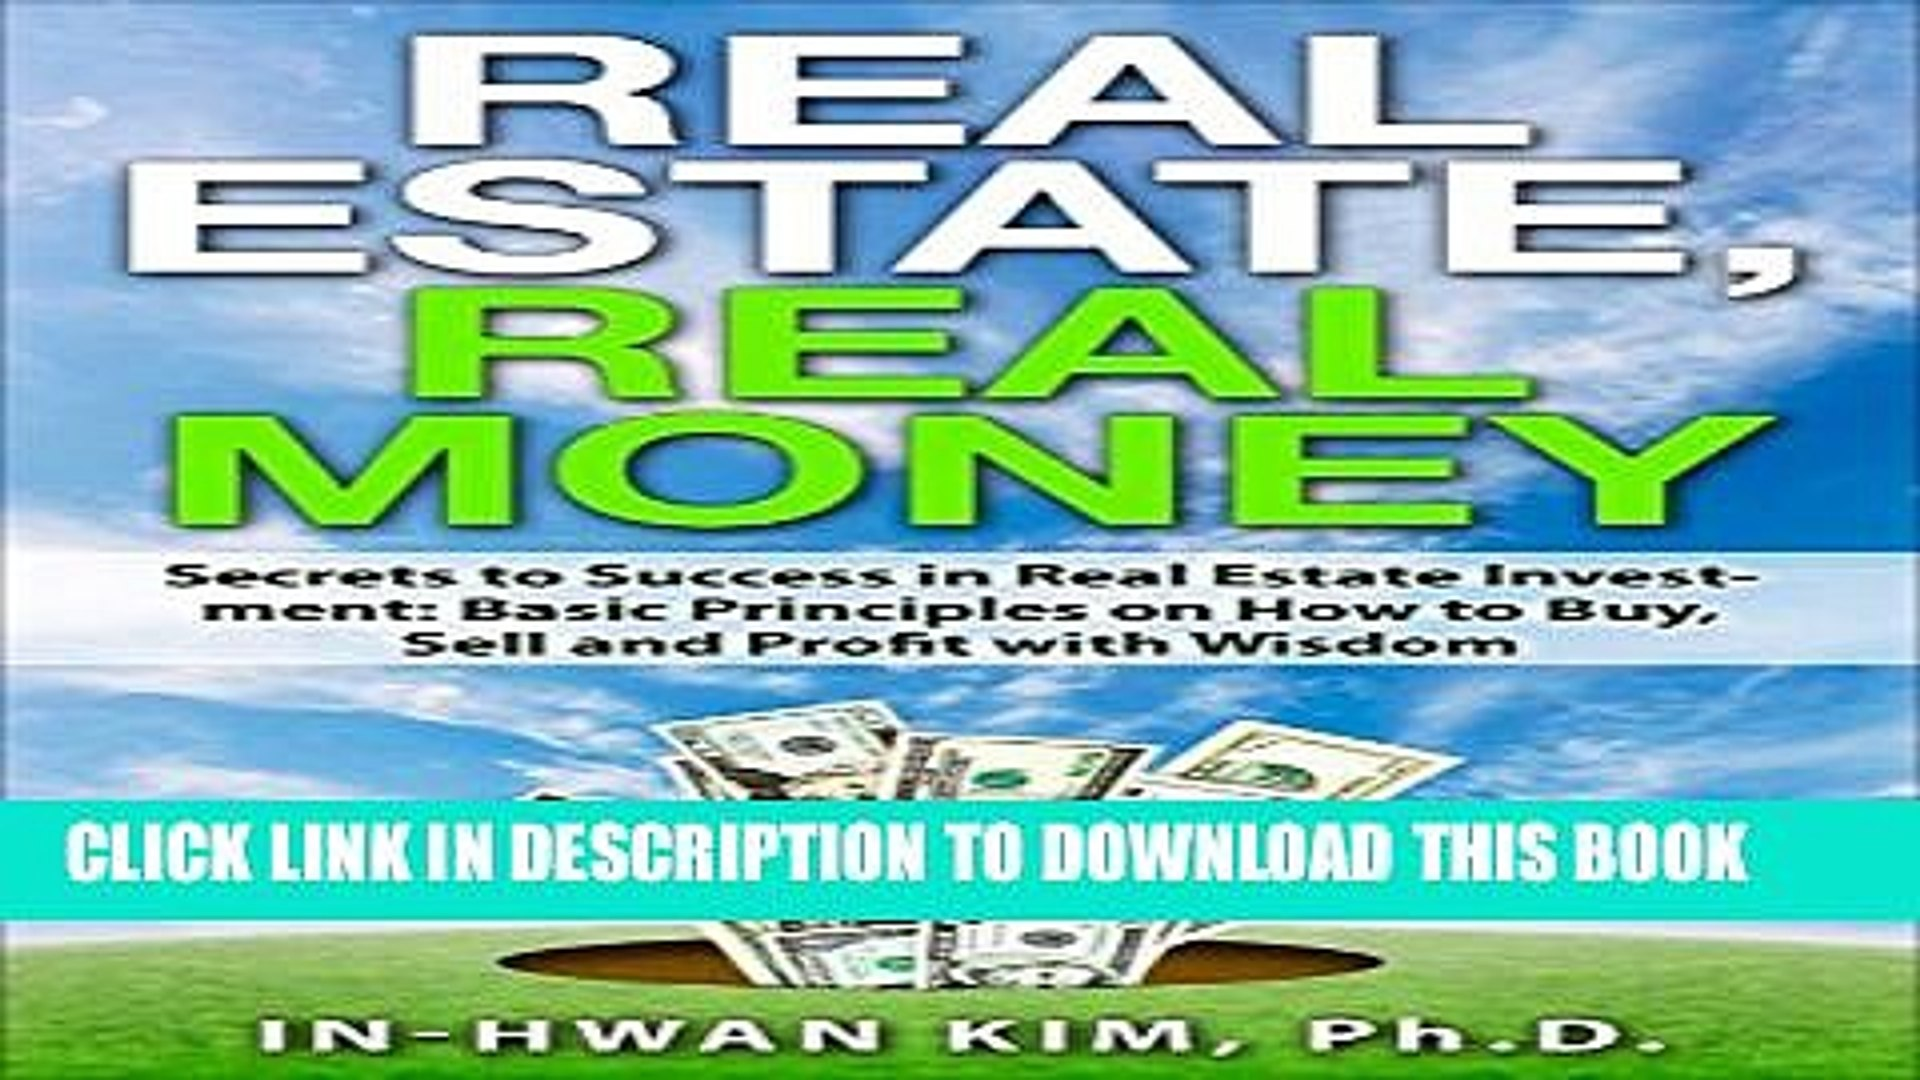 [PDF] Real Estate Real Money Secrets to Success in Real Estate Investment: Basic Principles on How